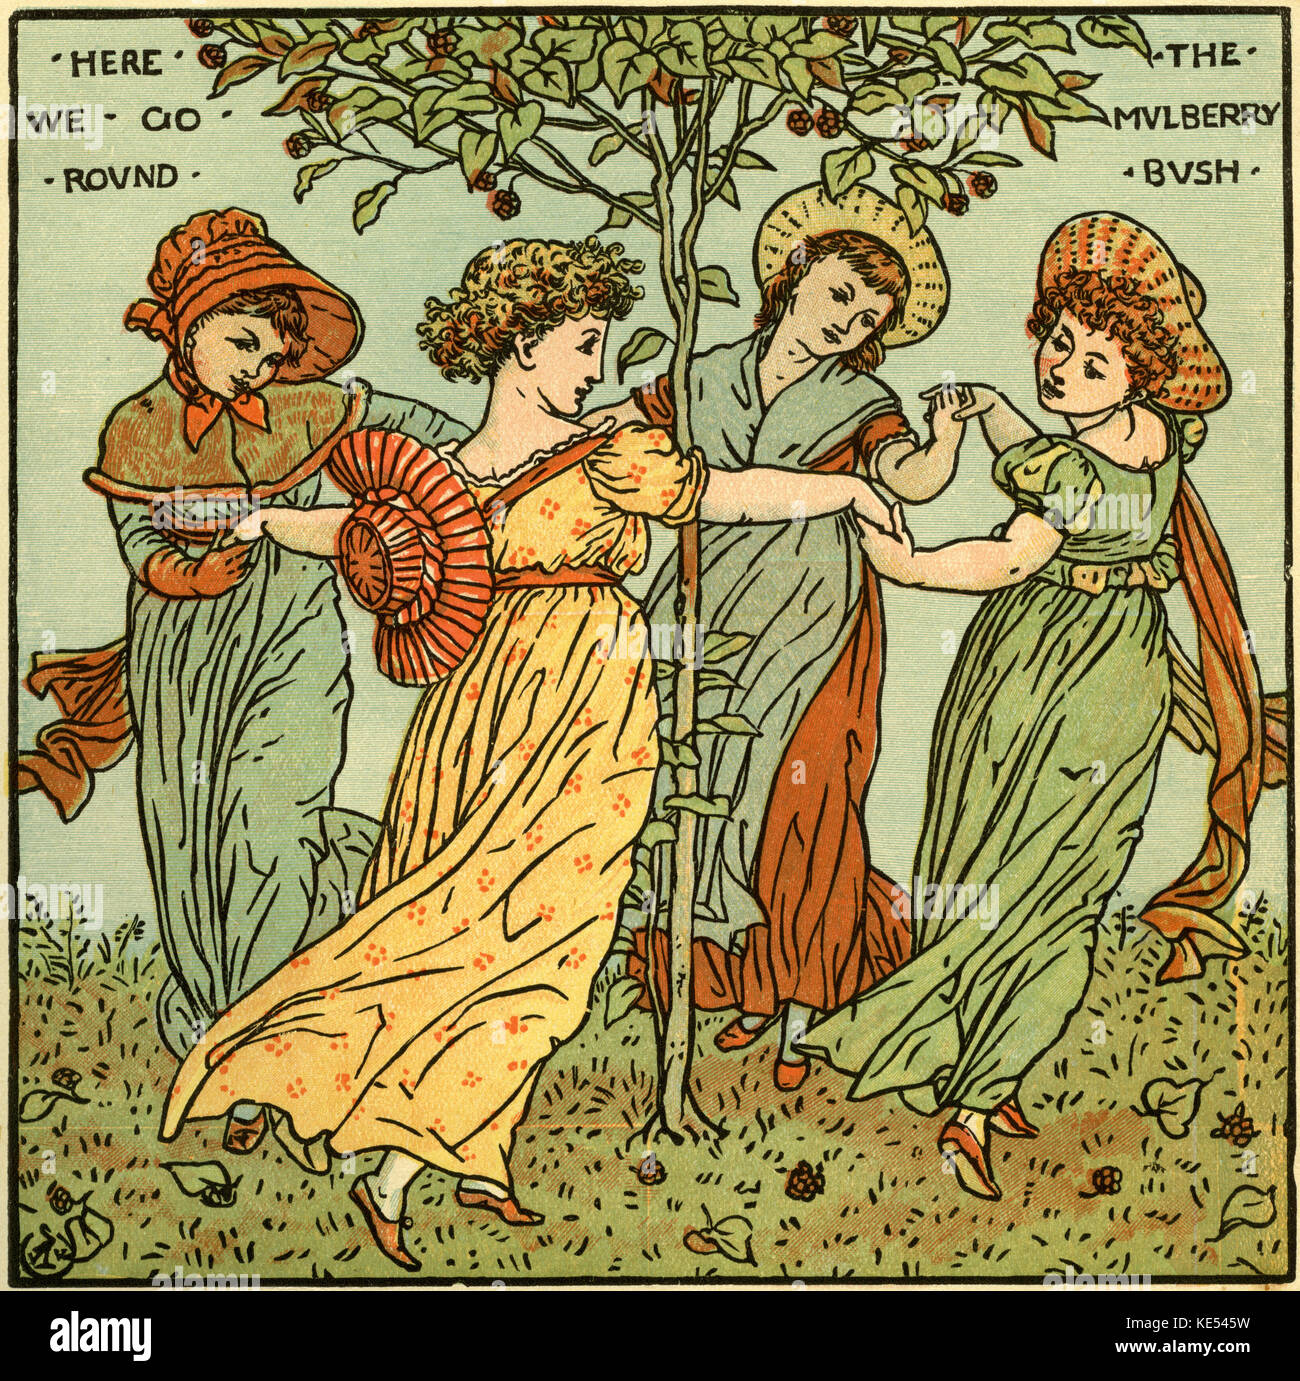 The mulberry bush, nursery rhyme illustration (1877) by Walter Crane. English artist of Arts and Crafts movement, - Stock Image